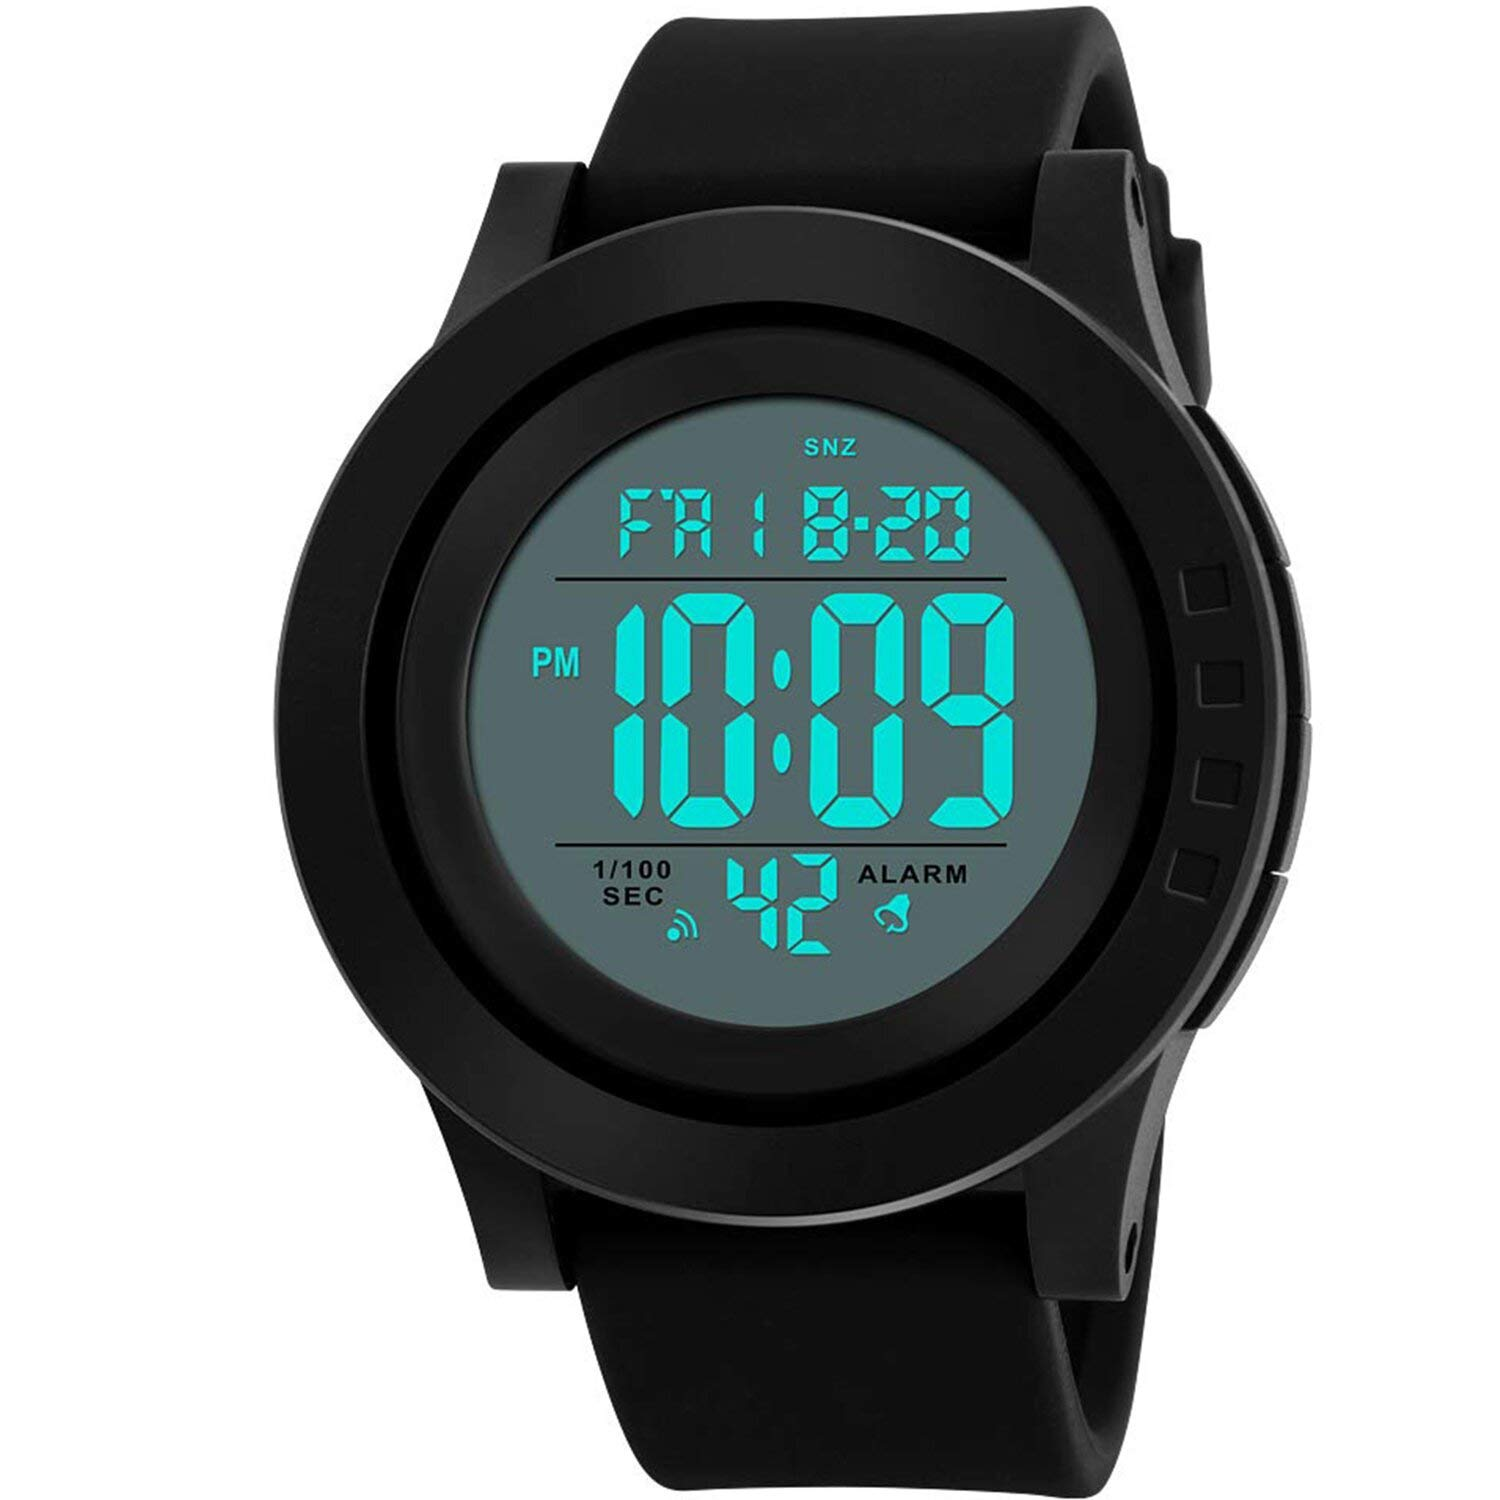 Lover's Watches Mens Watch Led Digital Date Sports Army Males Quartz Watch Outdoor Electronics Men Clock For Sports Wristband Running Gift